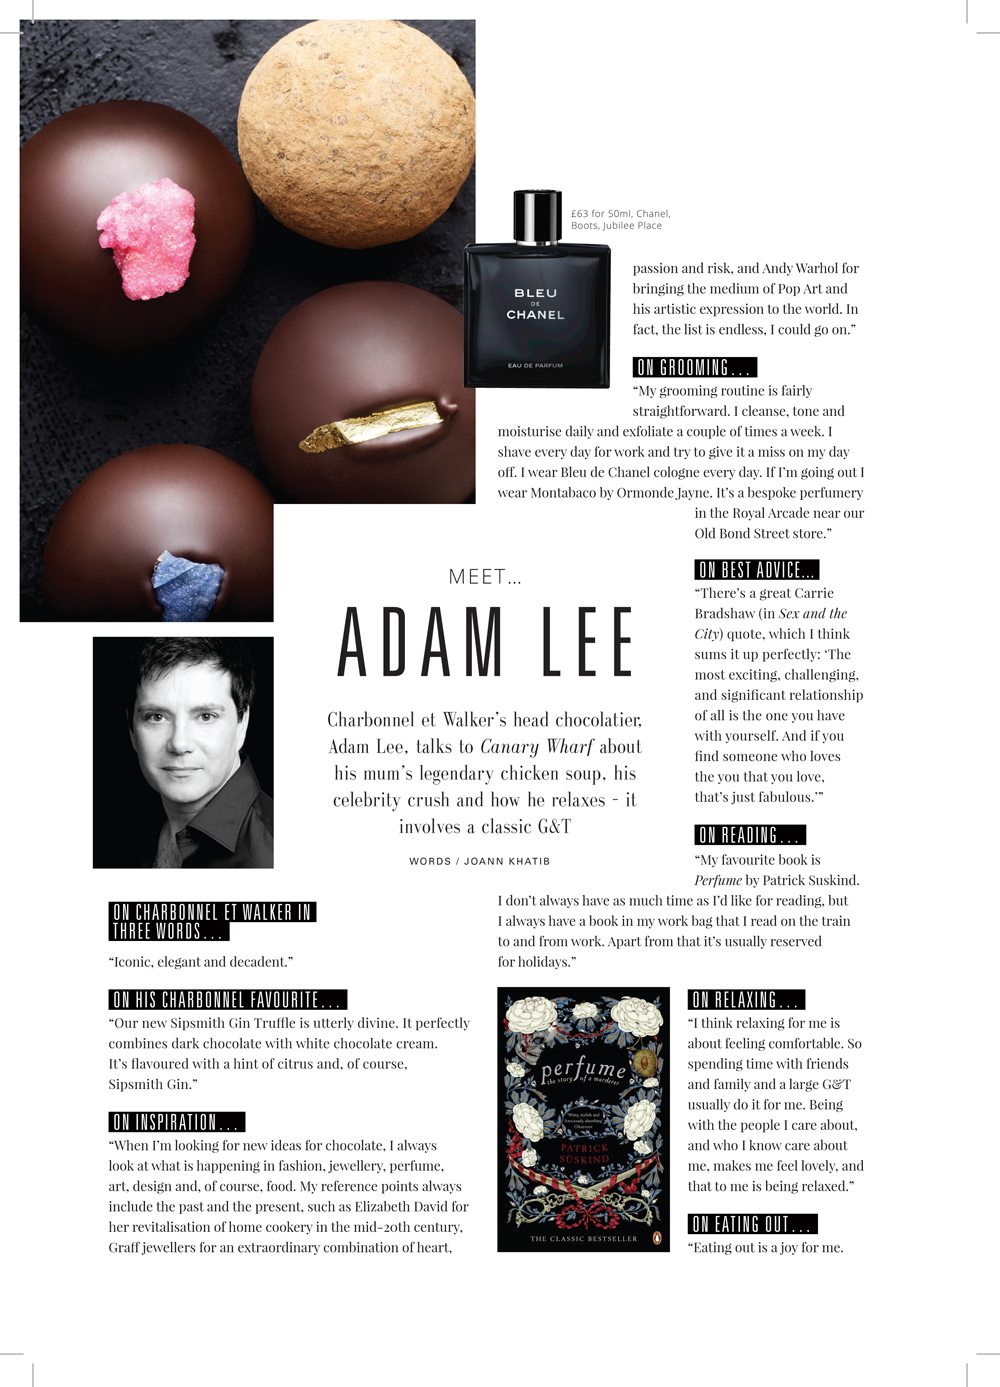 Adam Lee in Canary Wharf Magazine